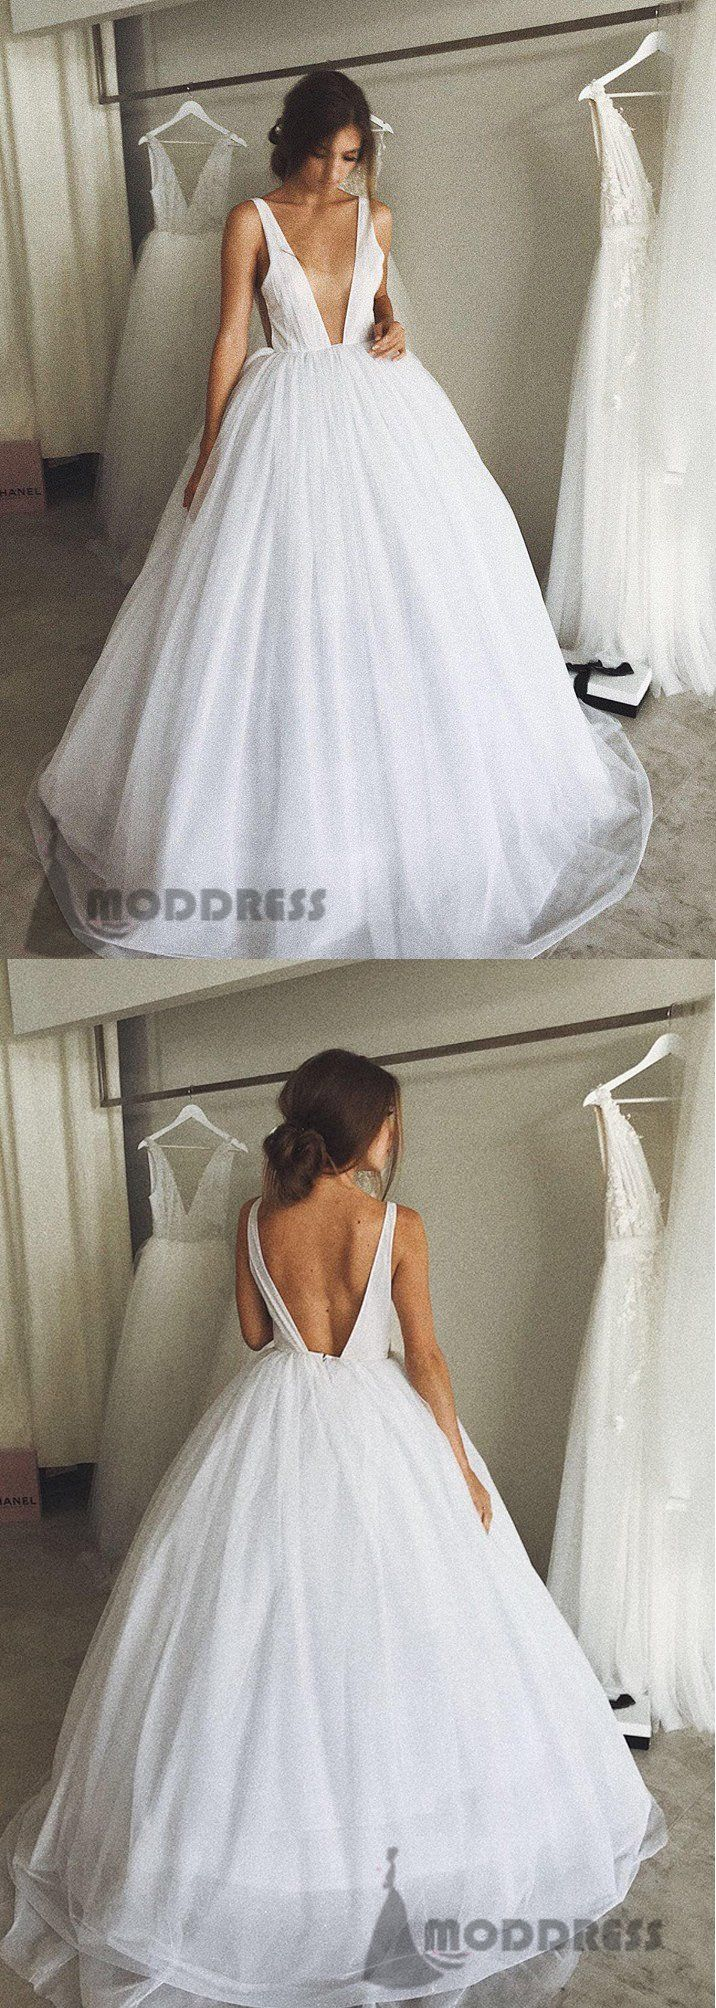 Deep vneck long prom dresses white evening ball gowns backless